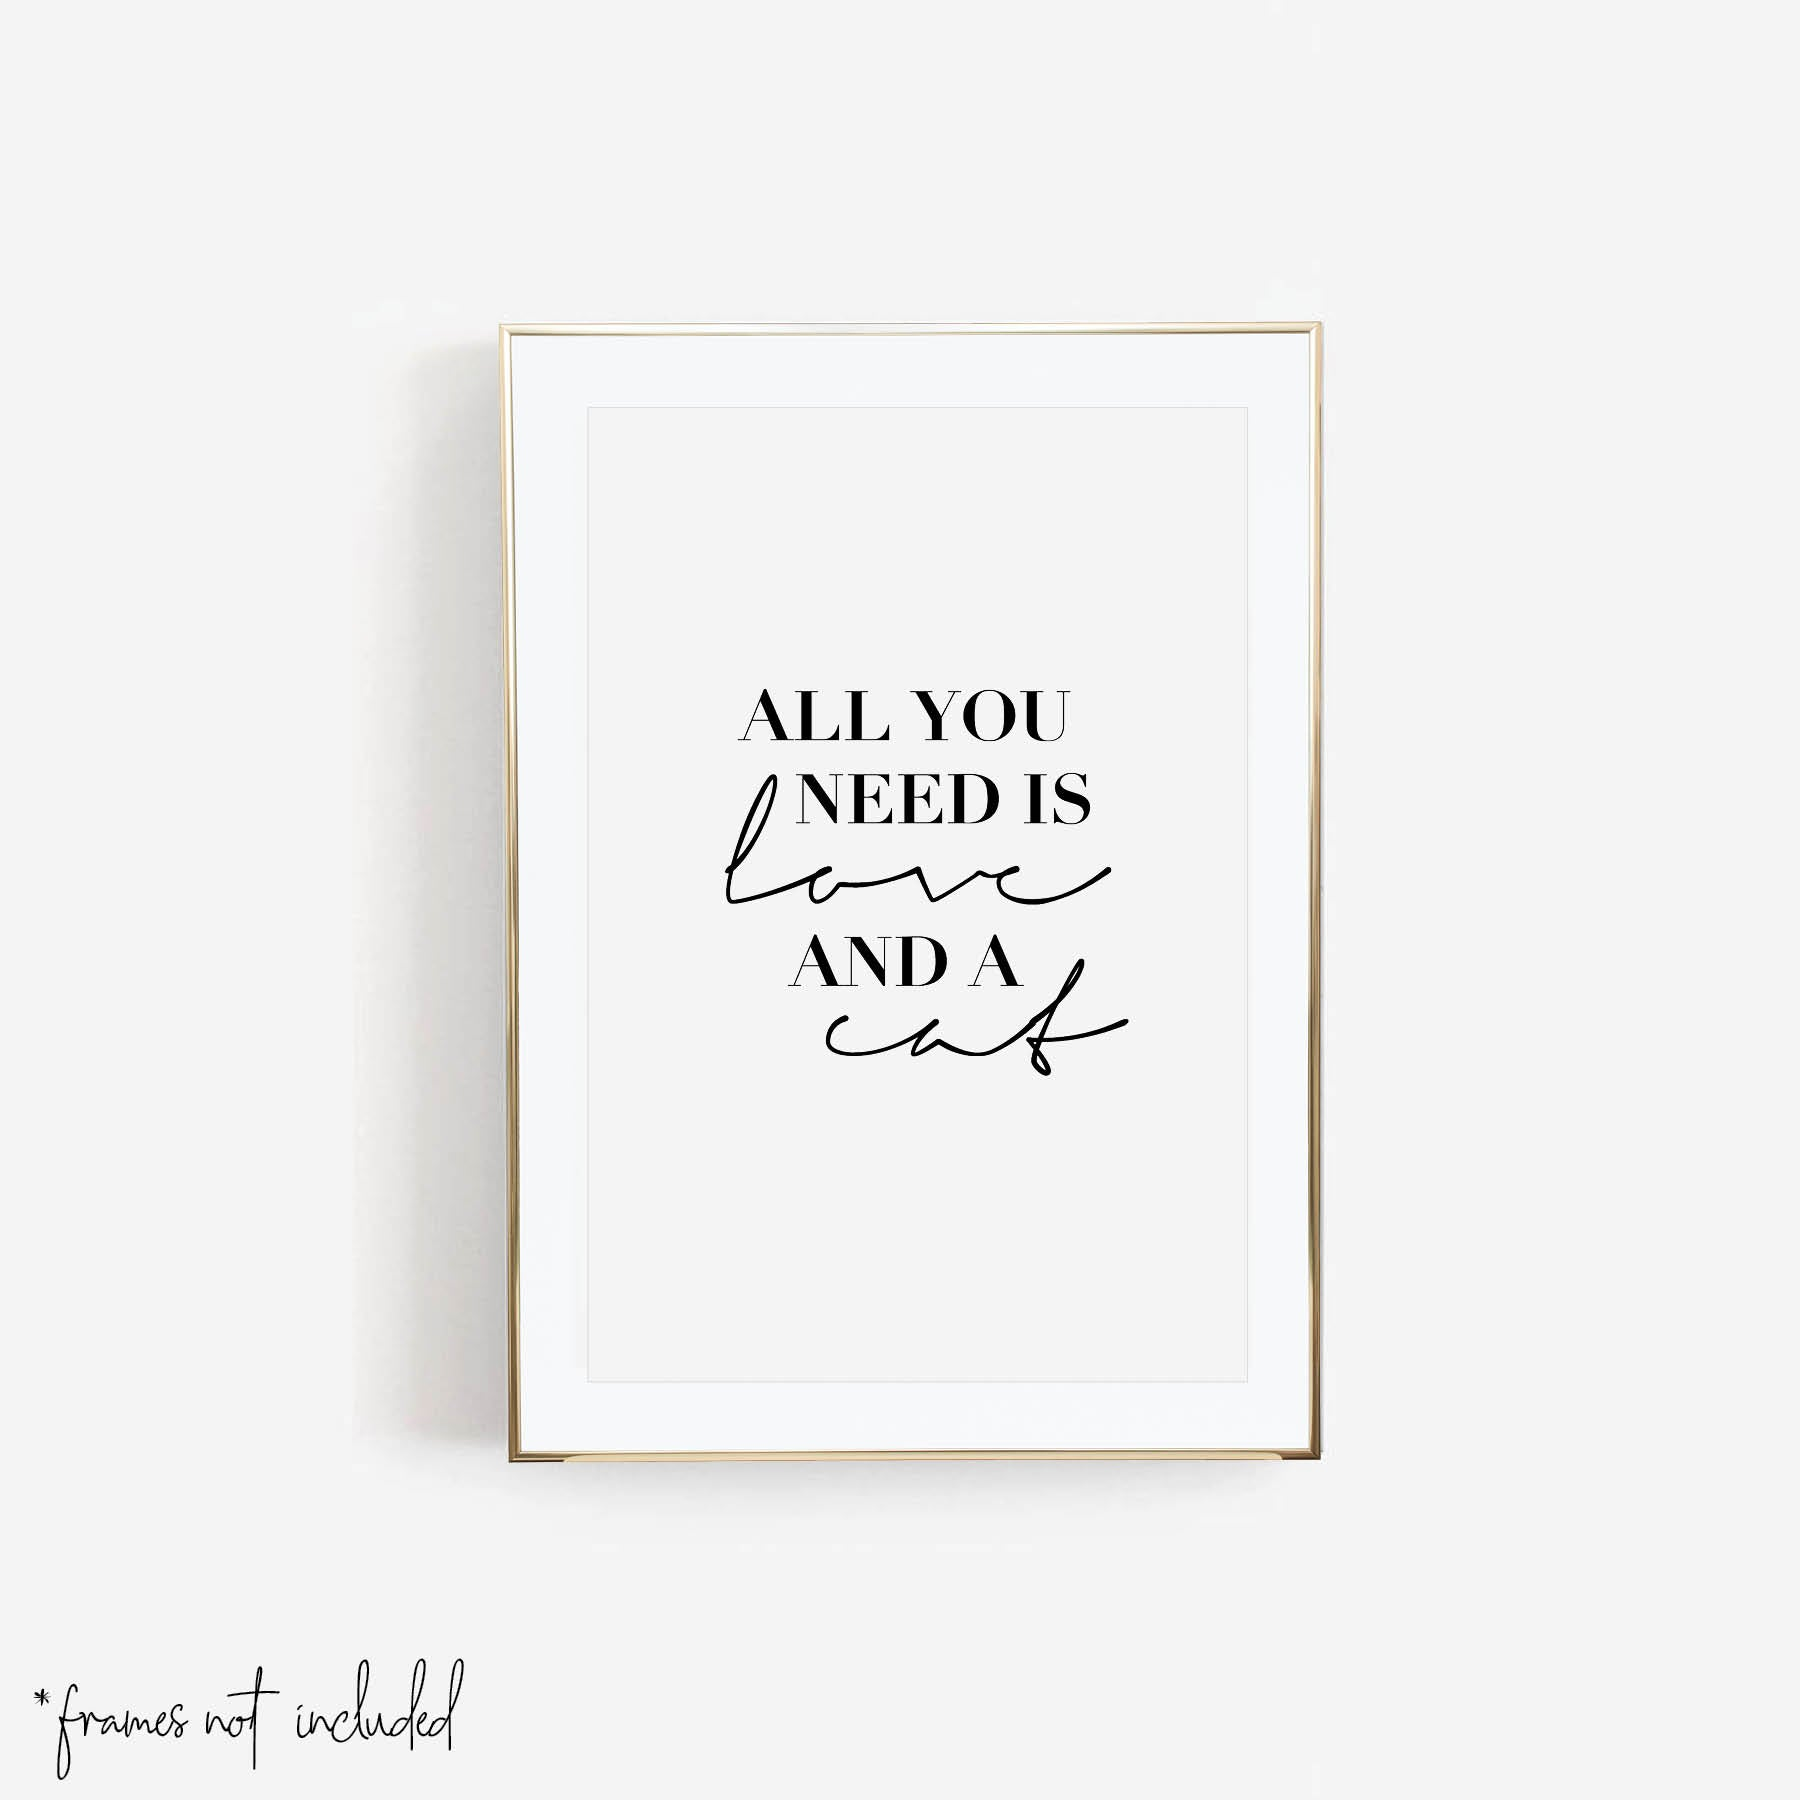 All You Need Is Love and A Cat Print - Typologie Paper Co